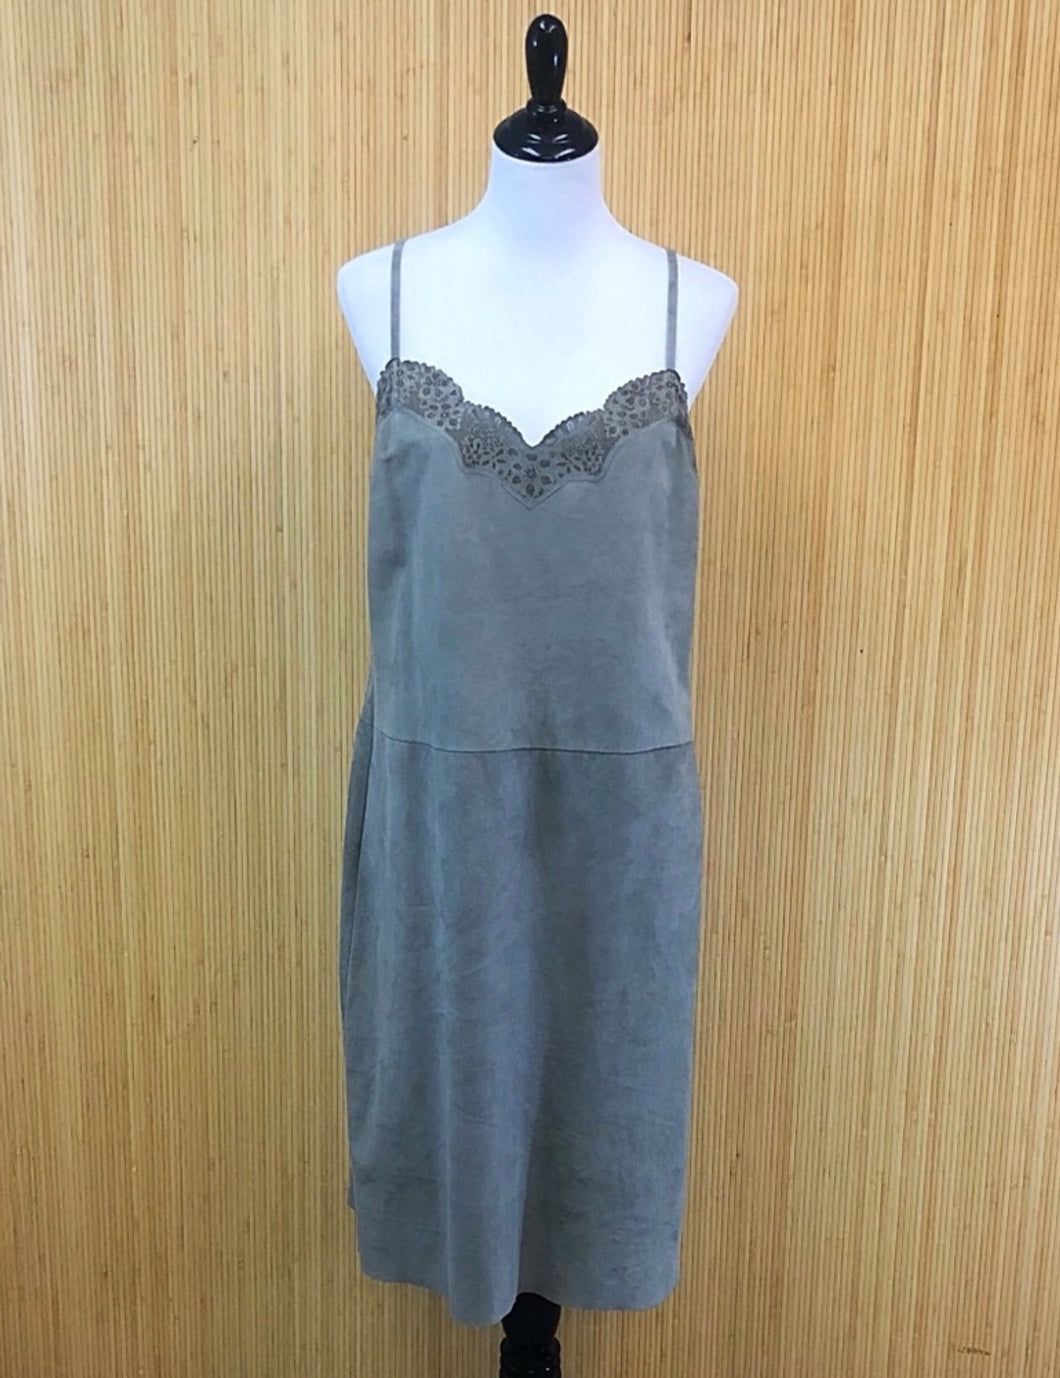 Polo Suede Sundress (XL)